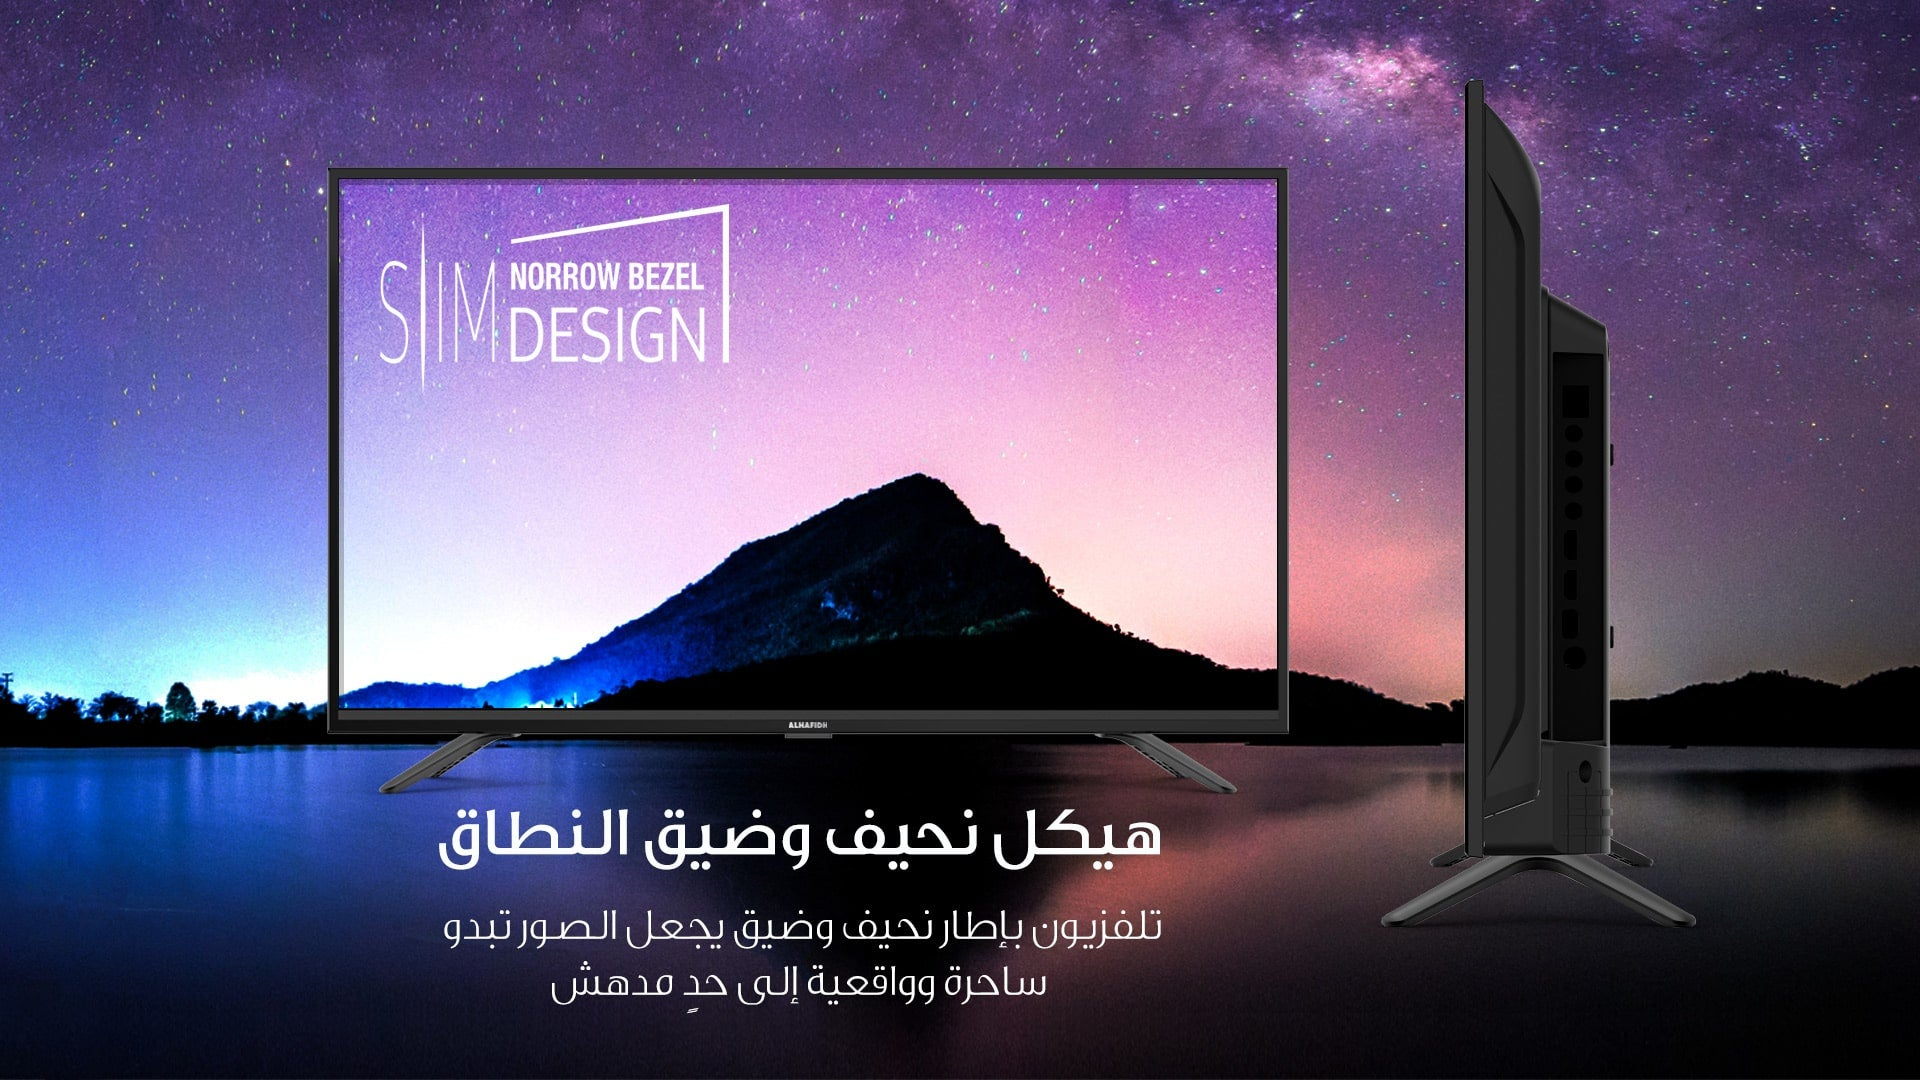 slim narrow bezel design 32d3 tv alhafidh